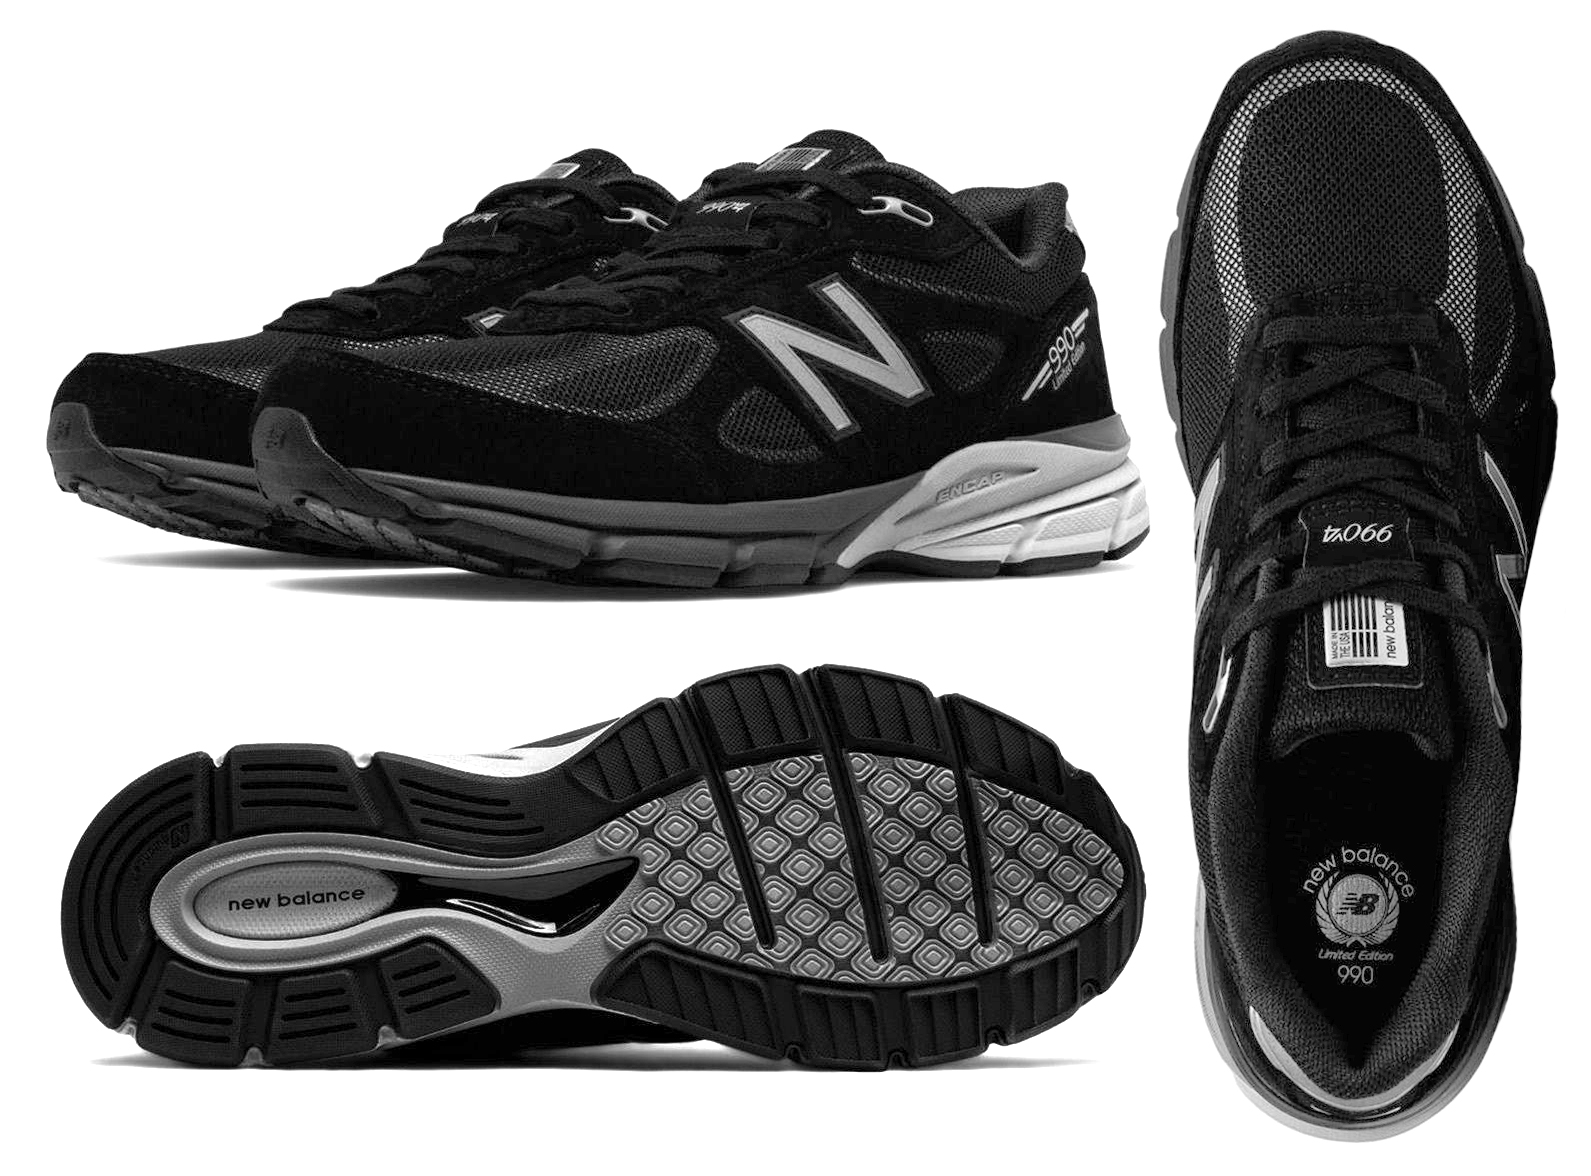 finest selection dd149 89883 Details about New Balance M990BLE4 Men's 990V4 Reflective Running Shoes,  Black